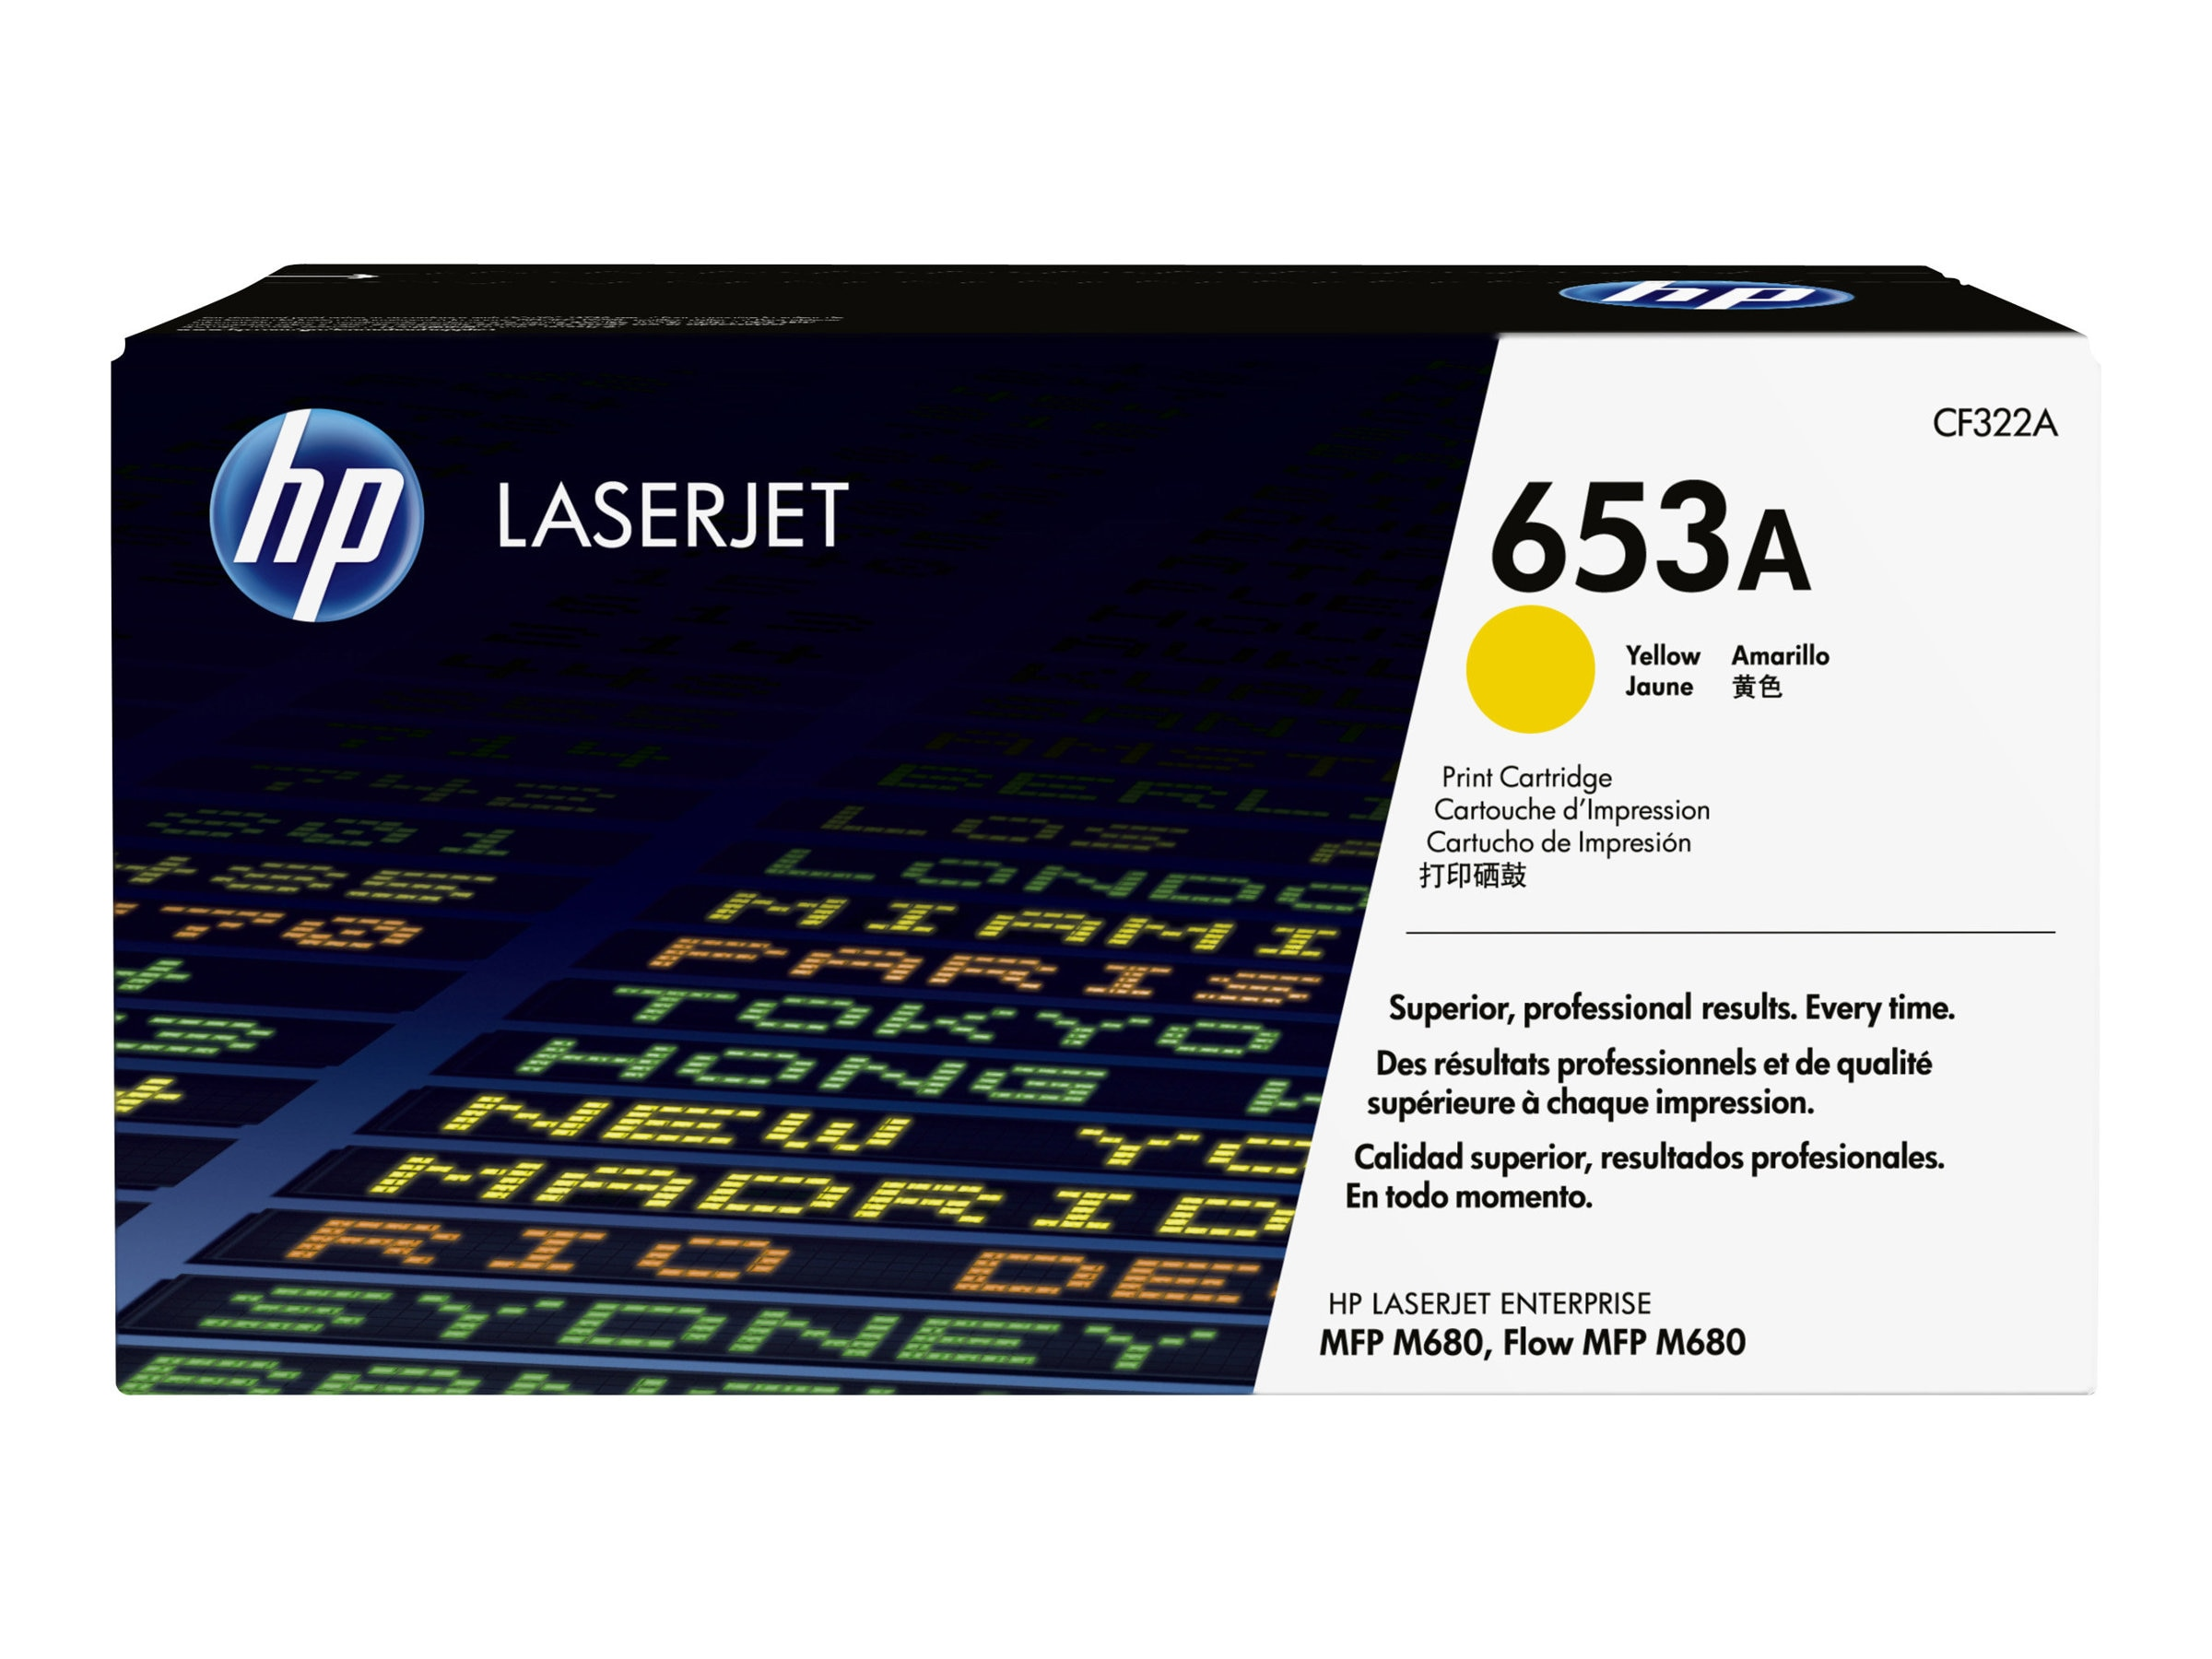 HP 653A (CF322A) Yellow Original LaserJet Toner Cartridge for HP LaserJet Enterprise MFP M680 Series